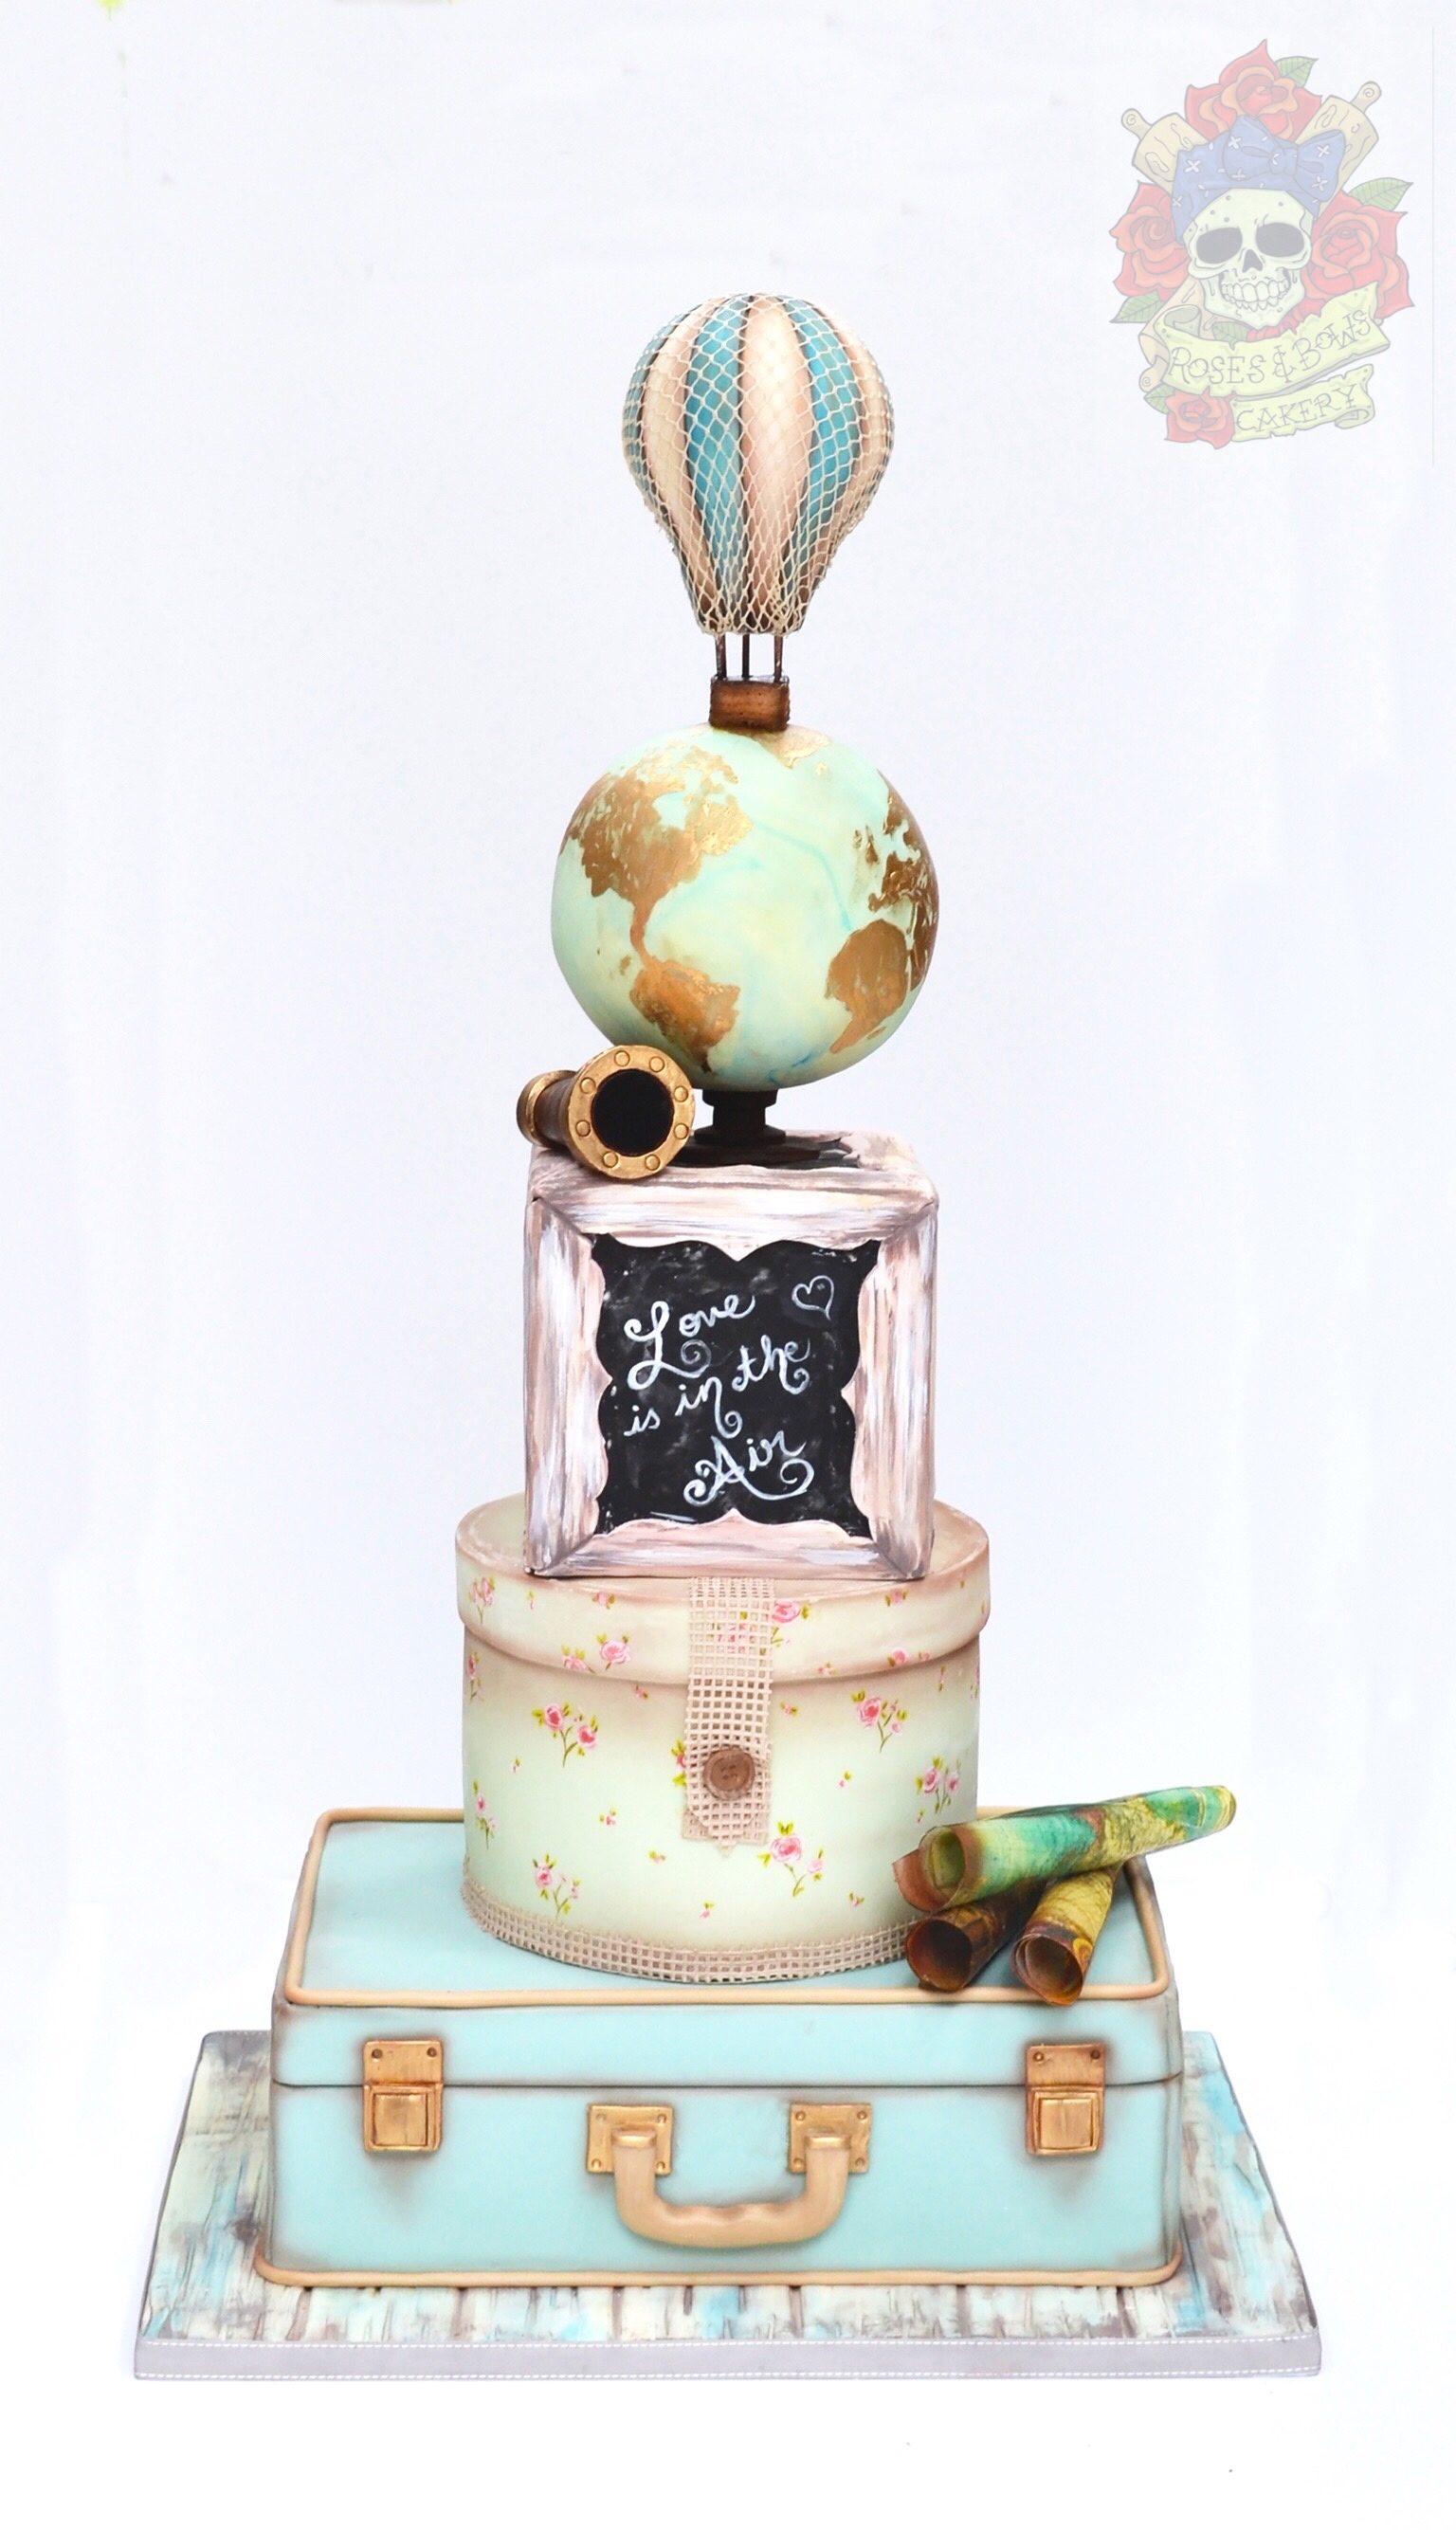 Around the world traveling fondant wedding cake